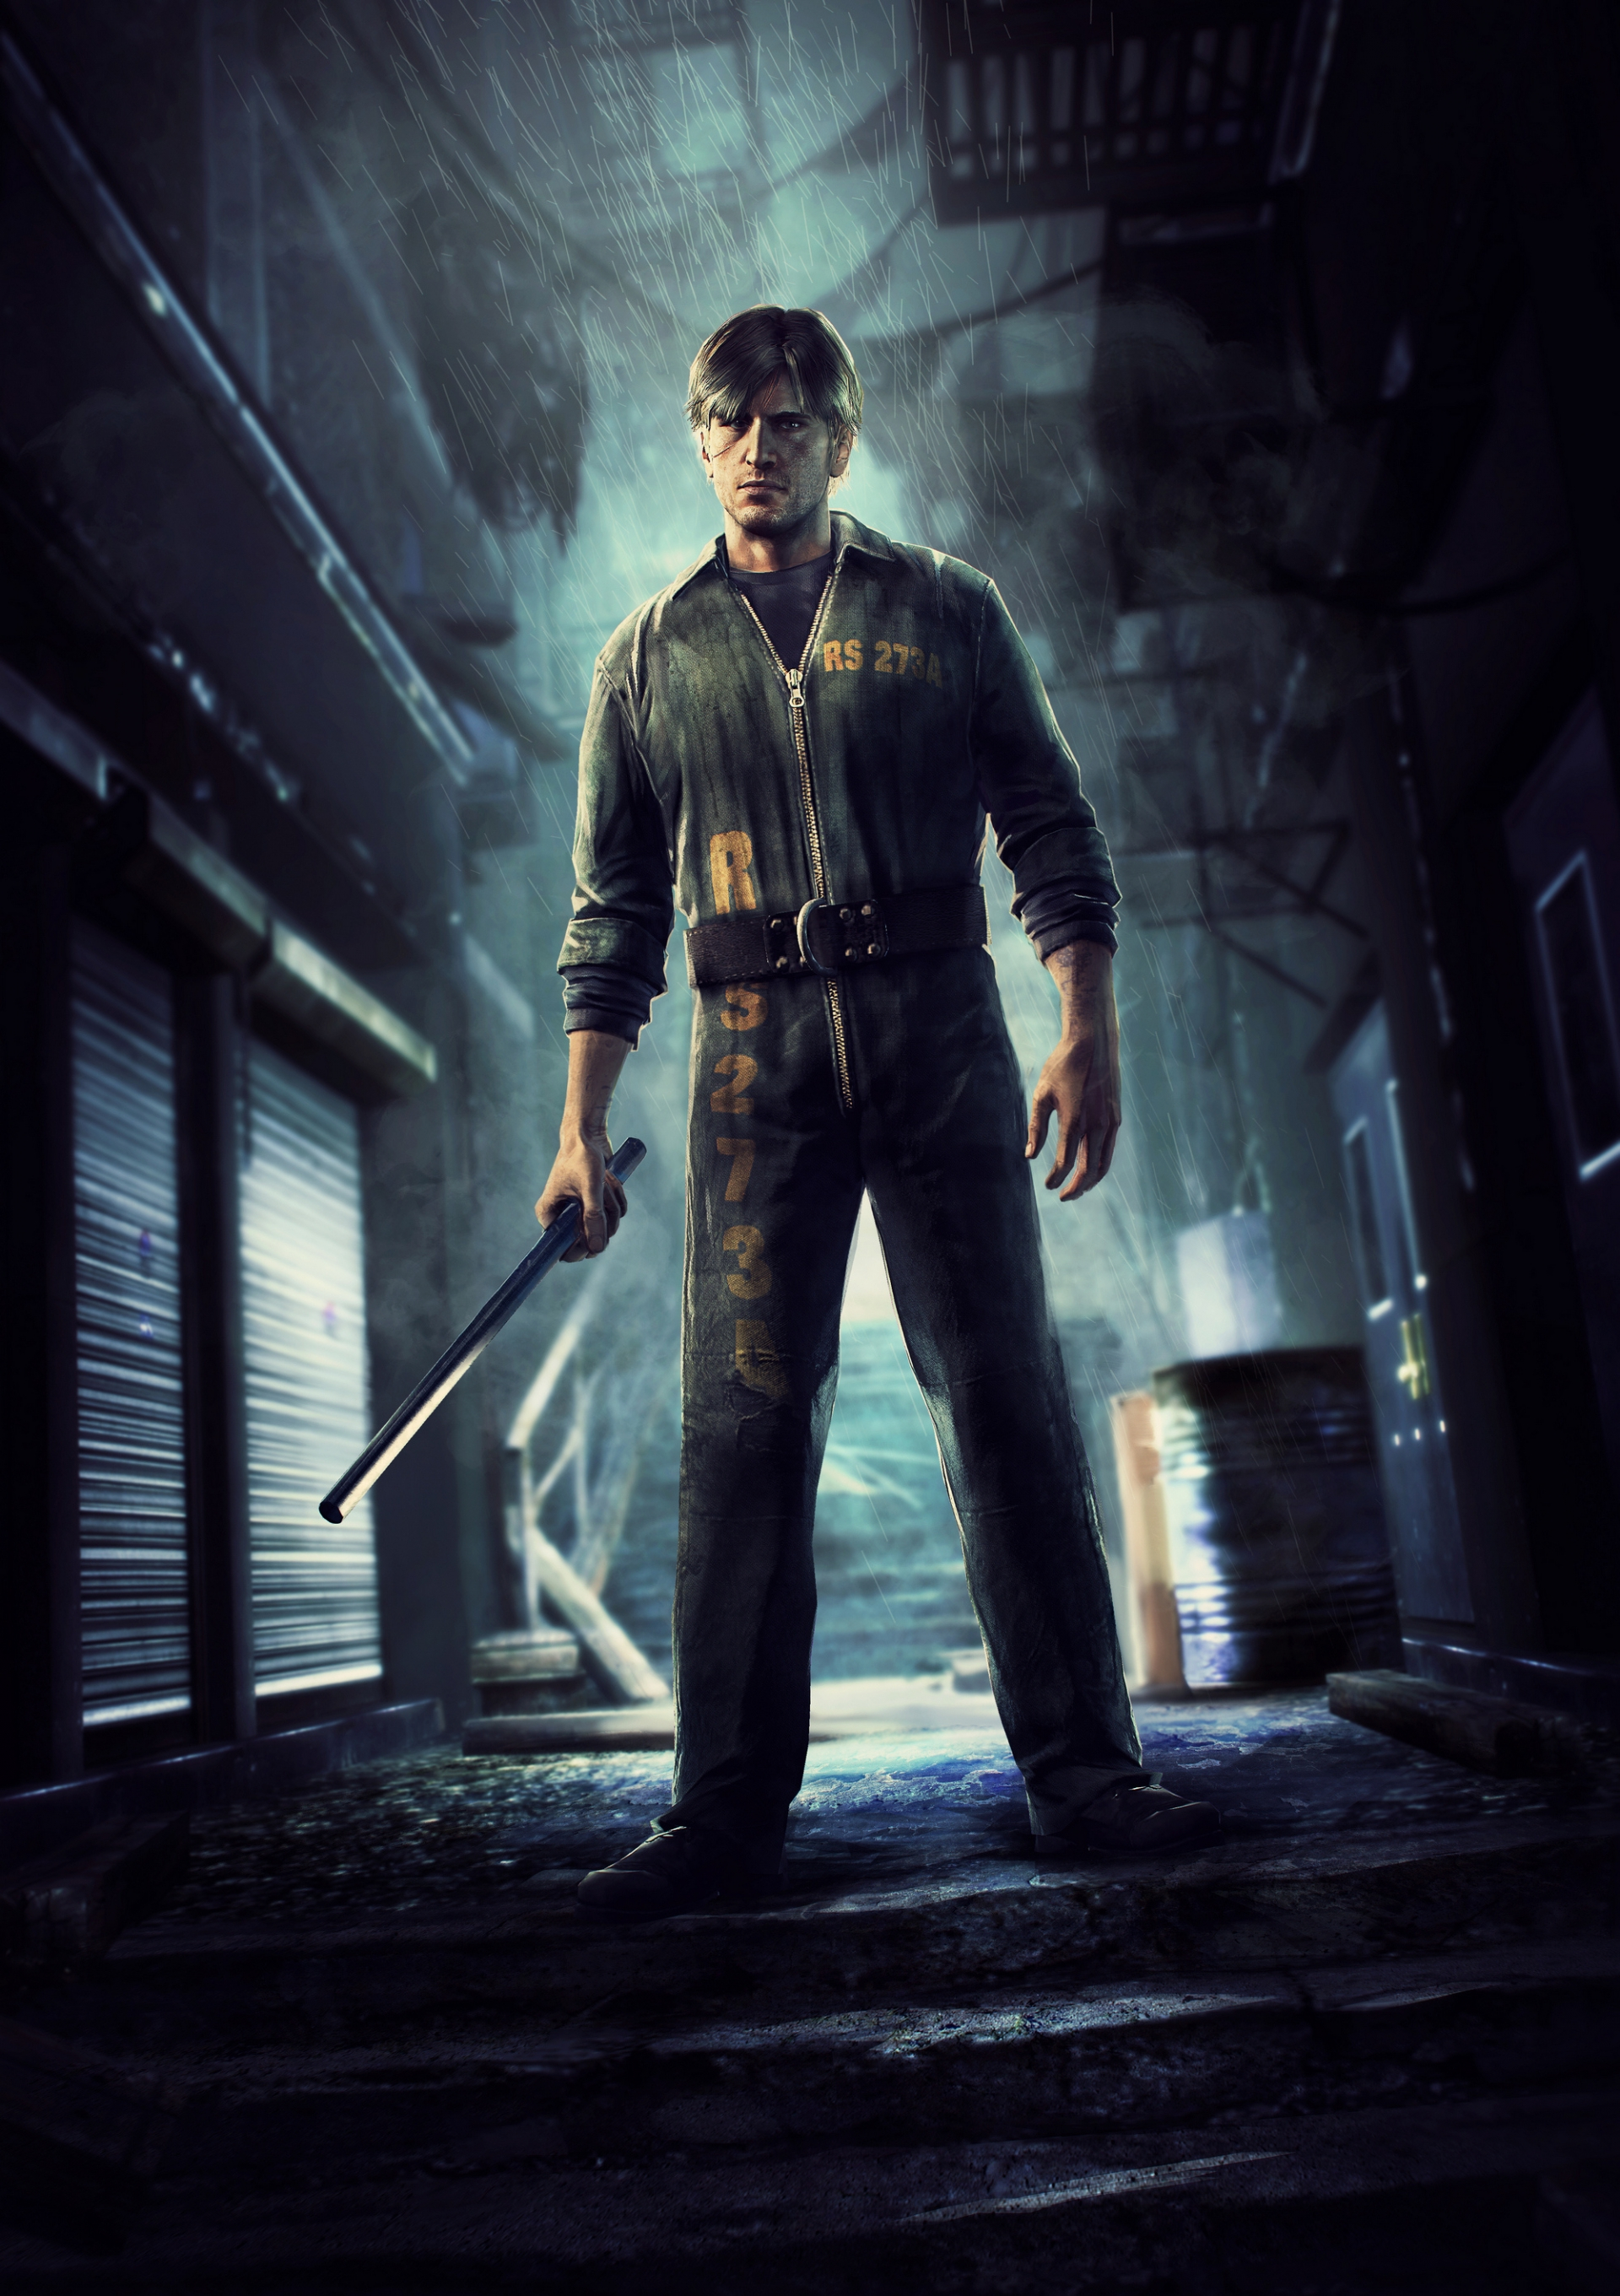 Арт к игре Silent Hill: Downpour